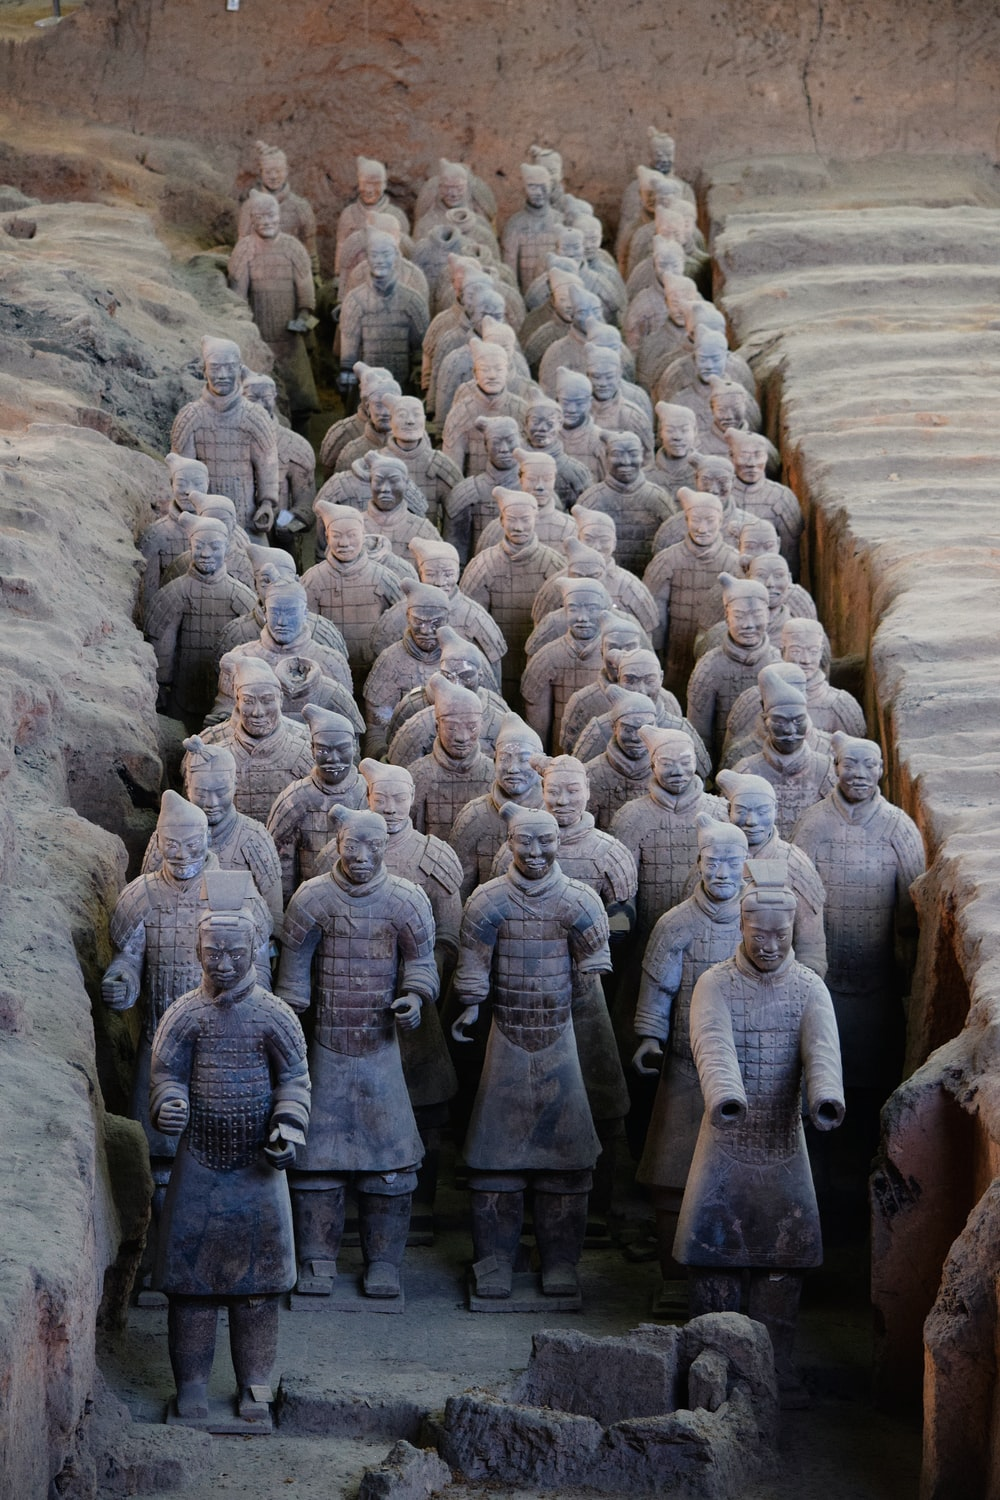 Terracotta Army statue